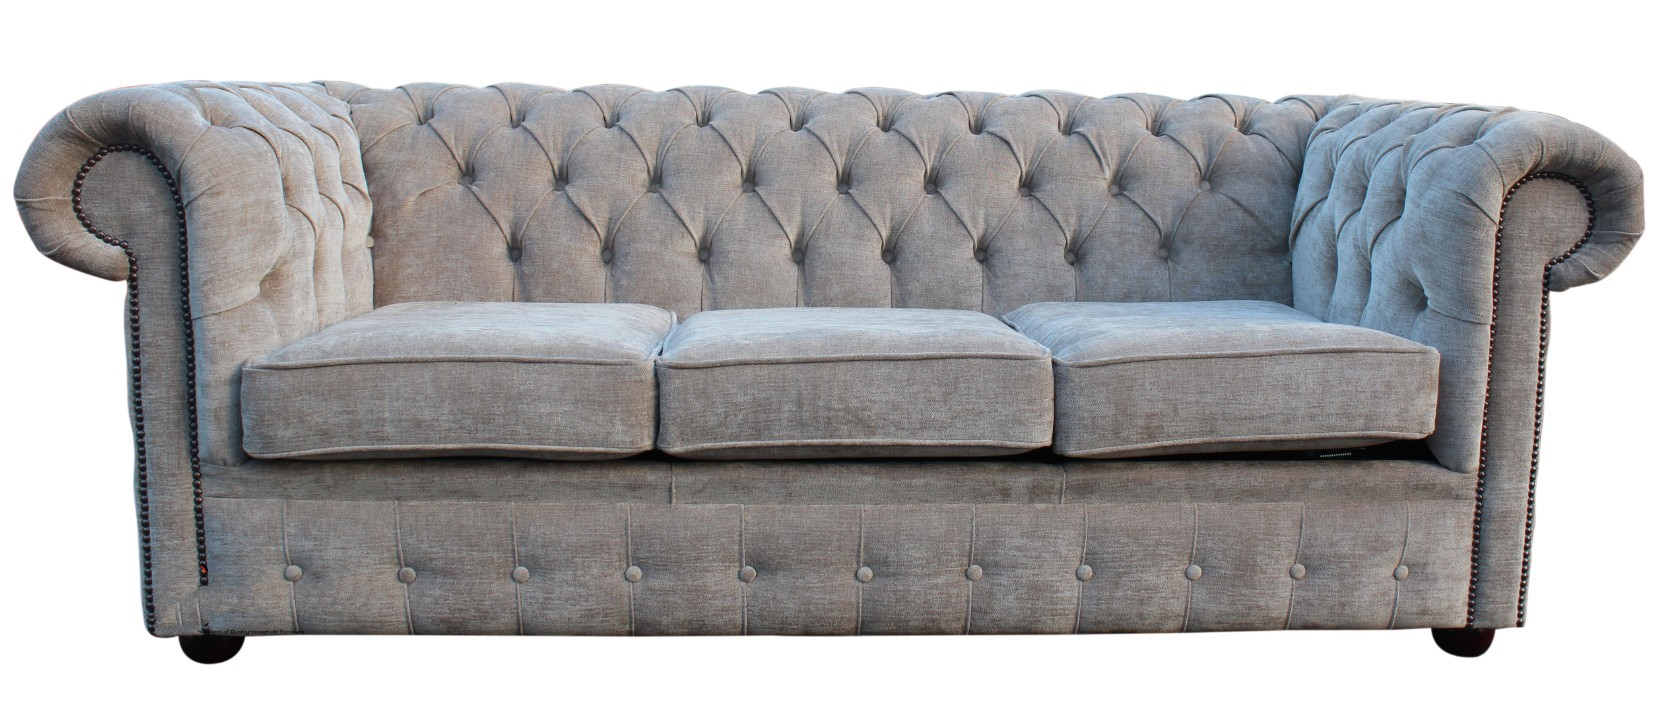 buy mink coloured fabric chesterfield sofa bed online. Black Bedroom Furniture Sets. Home Design Ideas